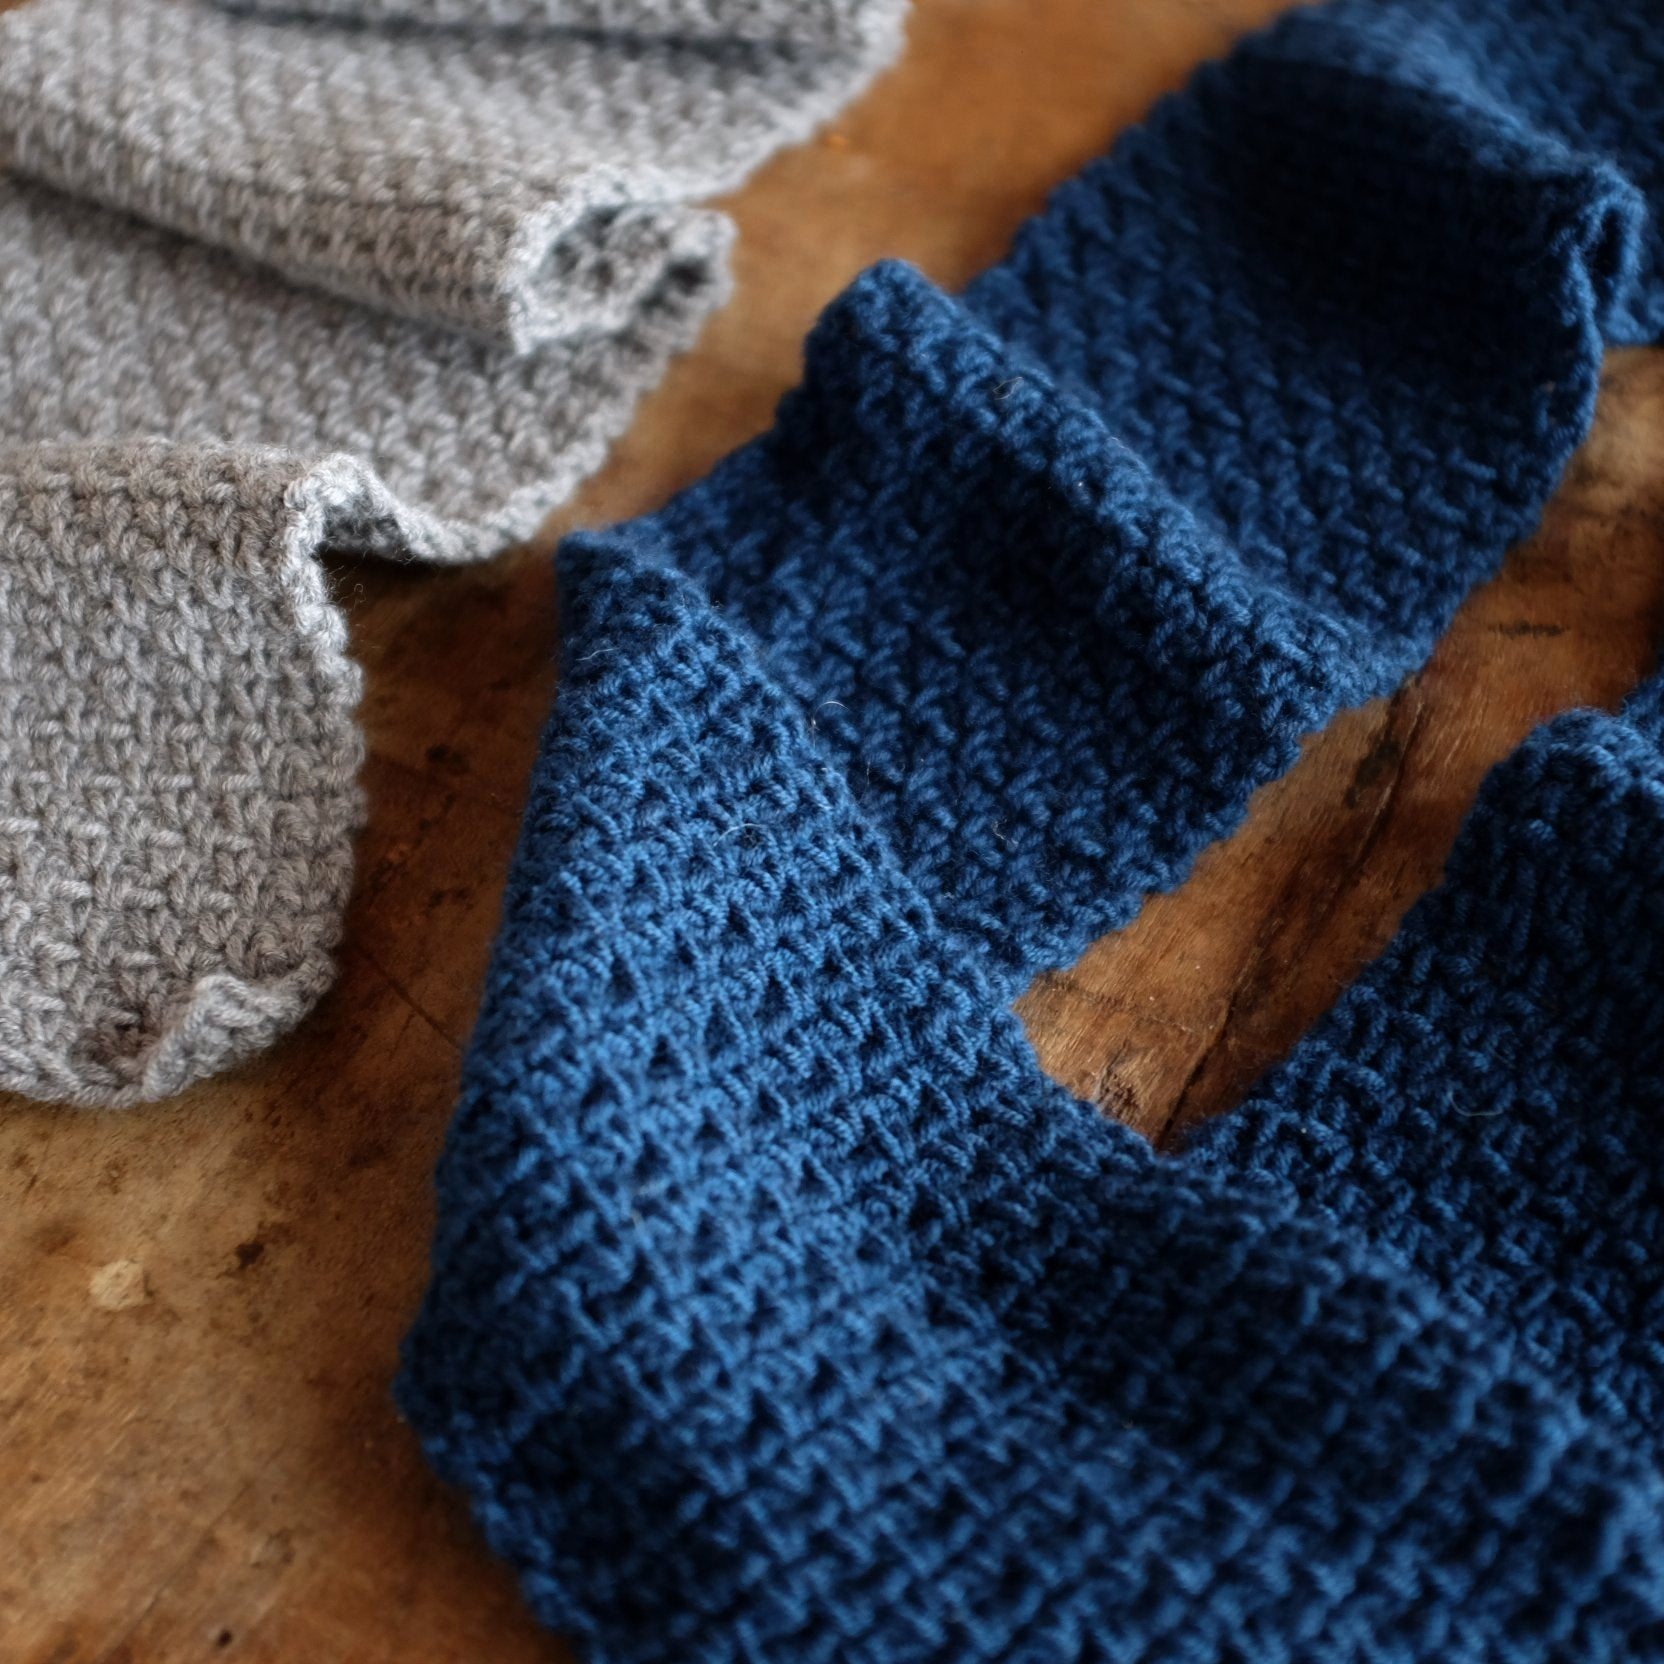 Crocheting 101: Simple Scarf or Cowl - Saturday, August 17th + More Dates!